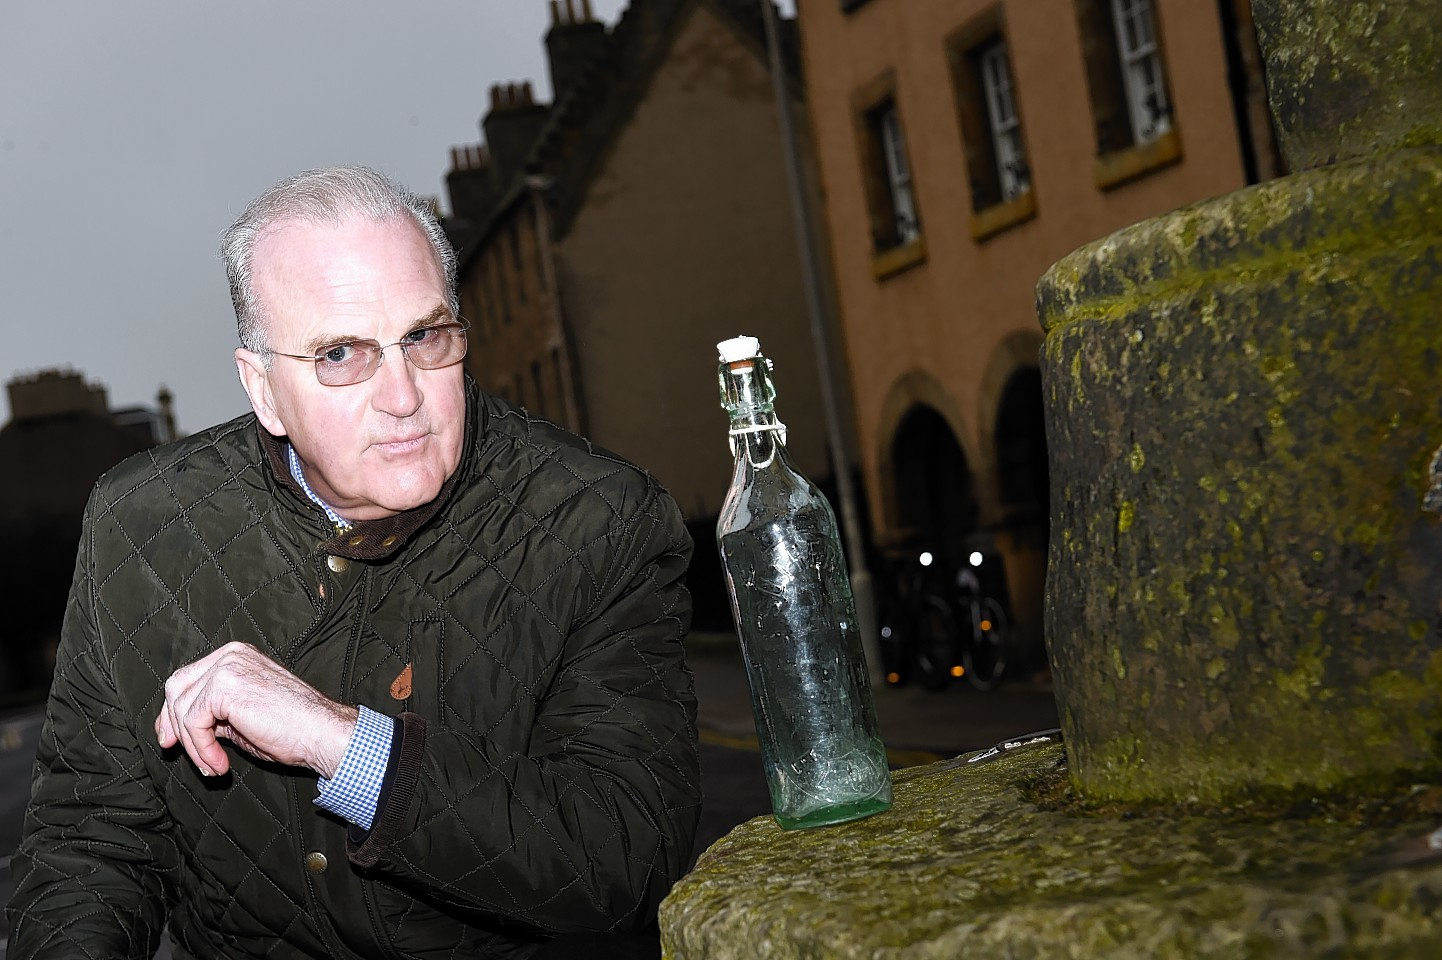 Jim Royan contemplates on an old Elgin bottle